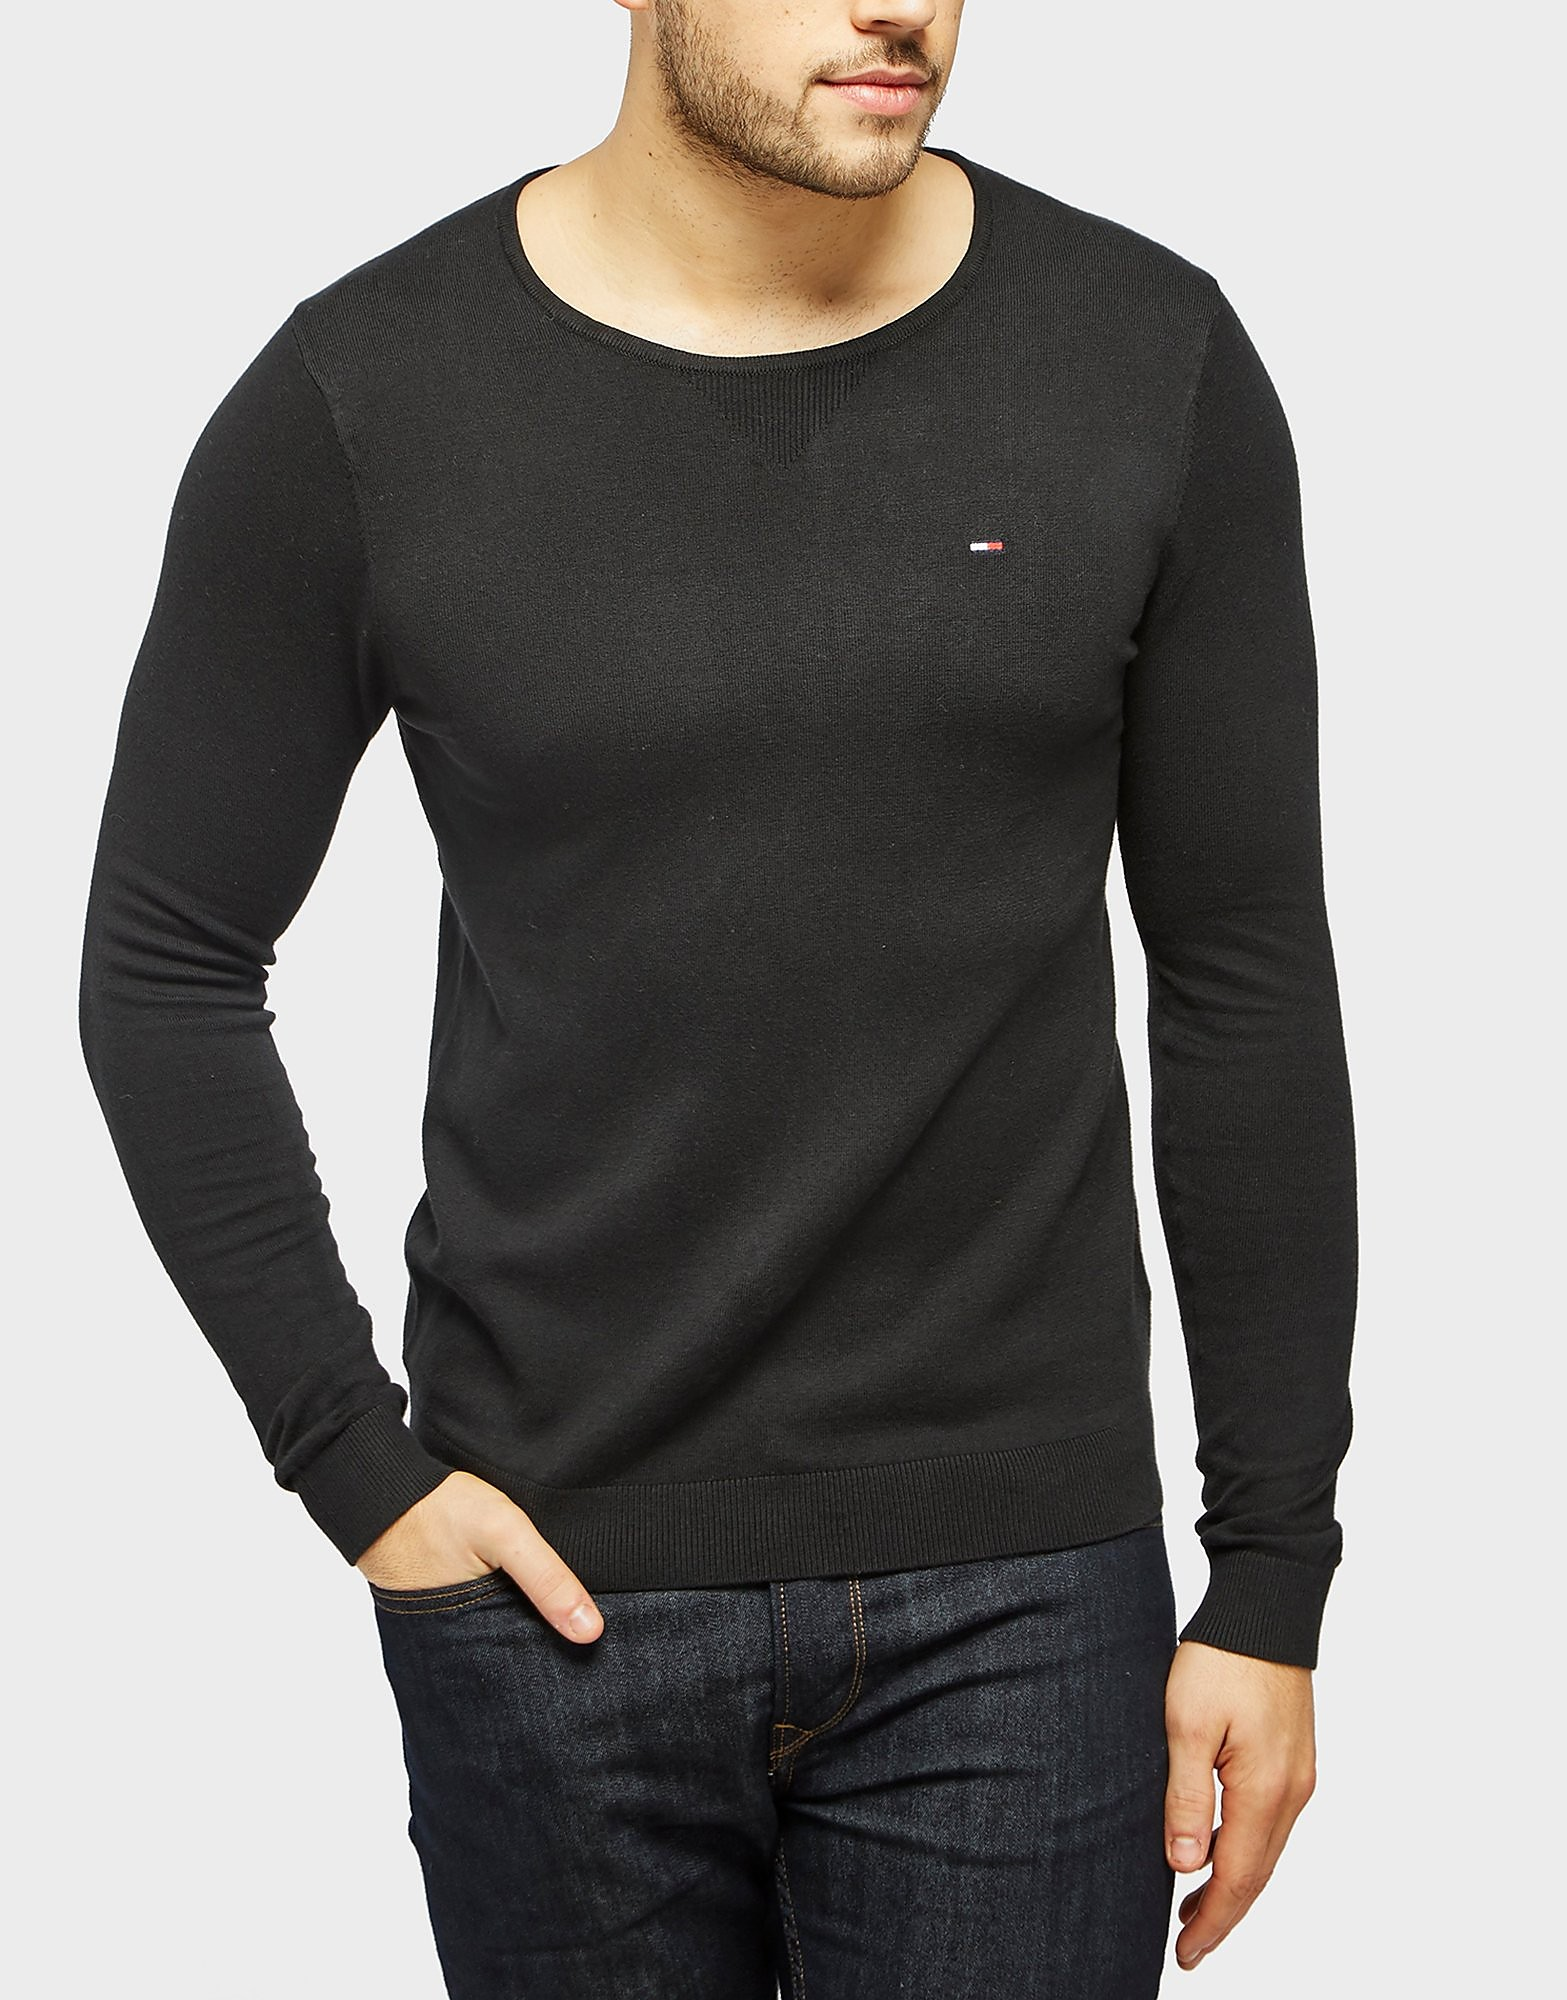 Tommy Hilfiger Long Sleeve Crew TShirt  Black Black